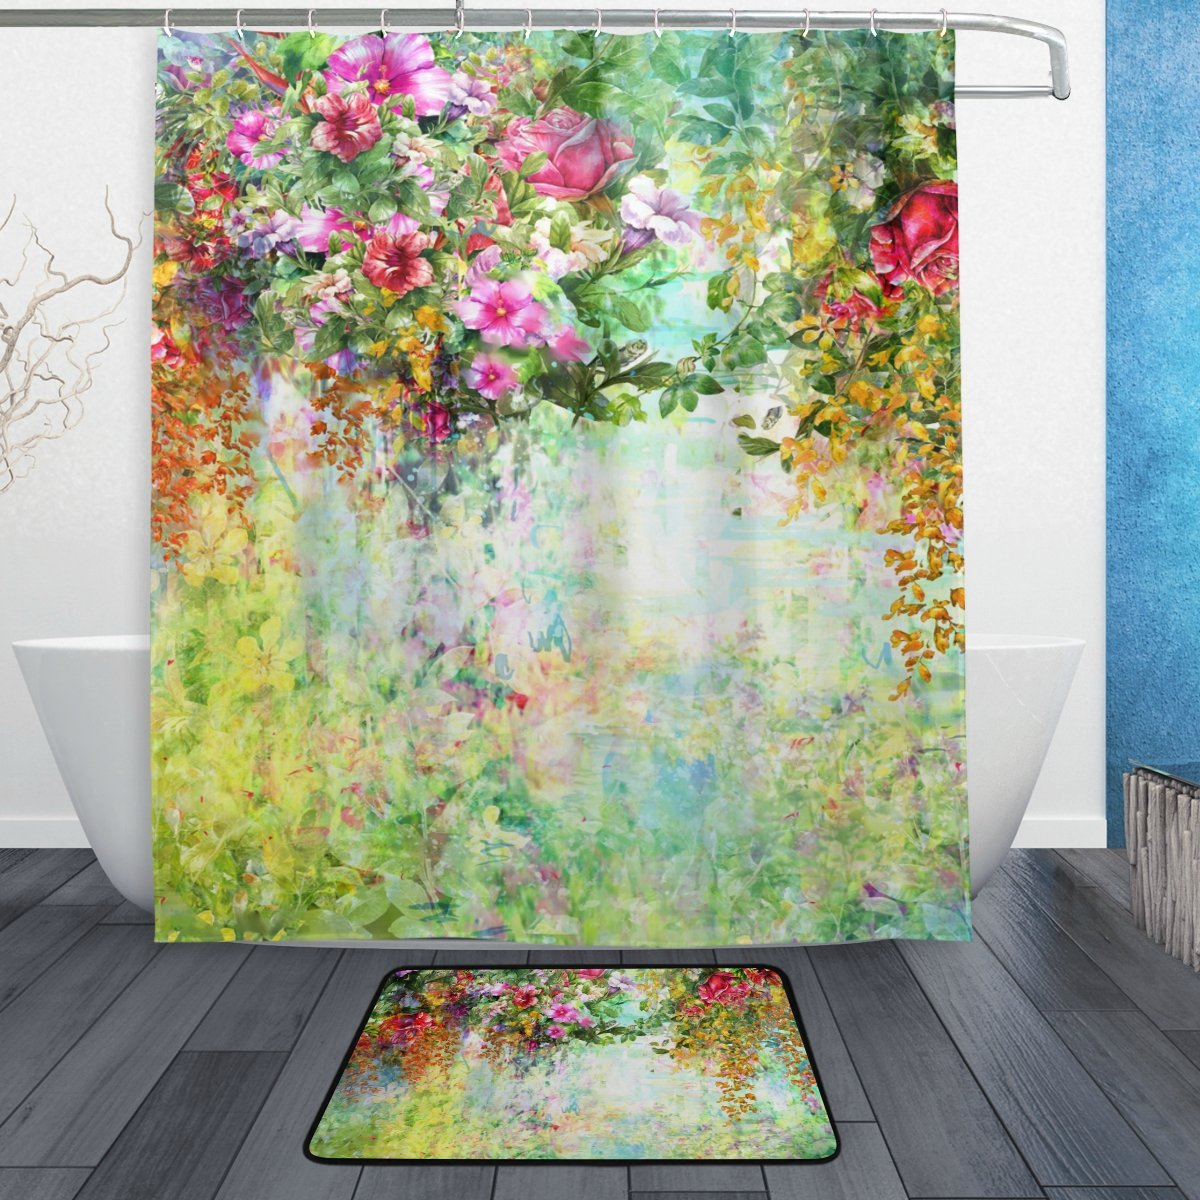 My Daily Watercolor Flower Spring Floral Shower Curtain 60 x 72 inch with Bath Mat Rug & Hooks, Mildew Resistant & Waterproof Polyester Decoration Bathroom Curtain Set durable service